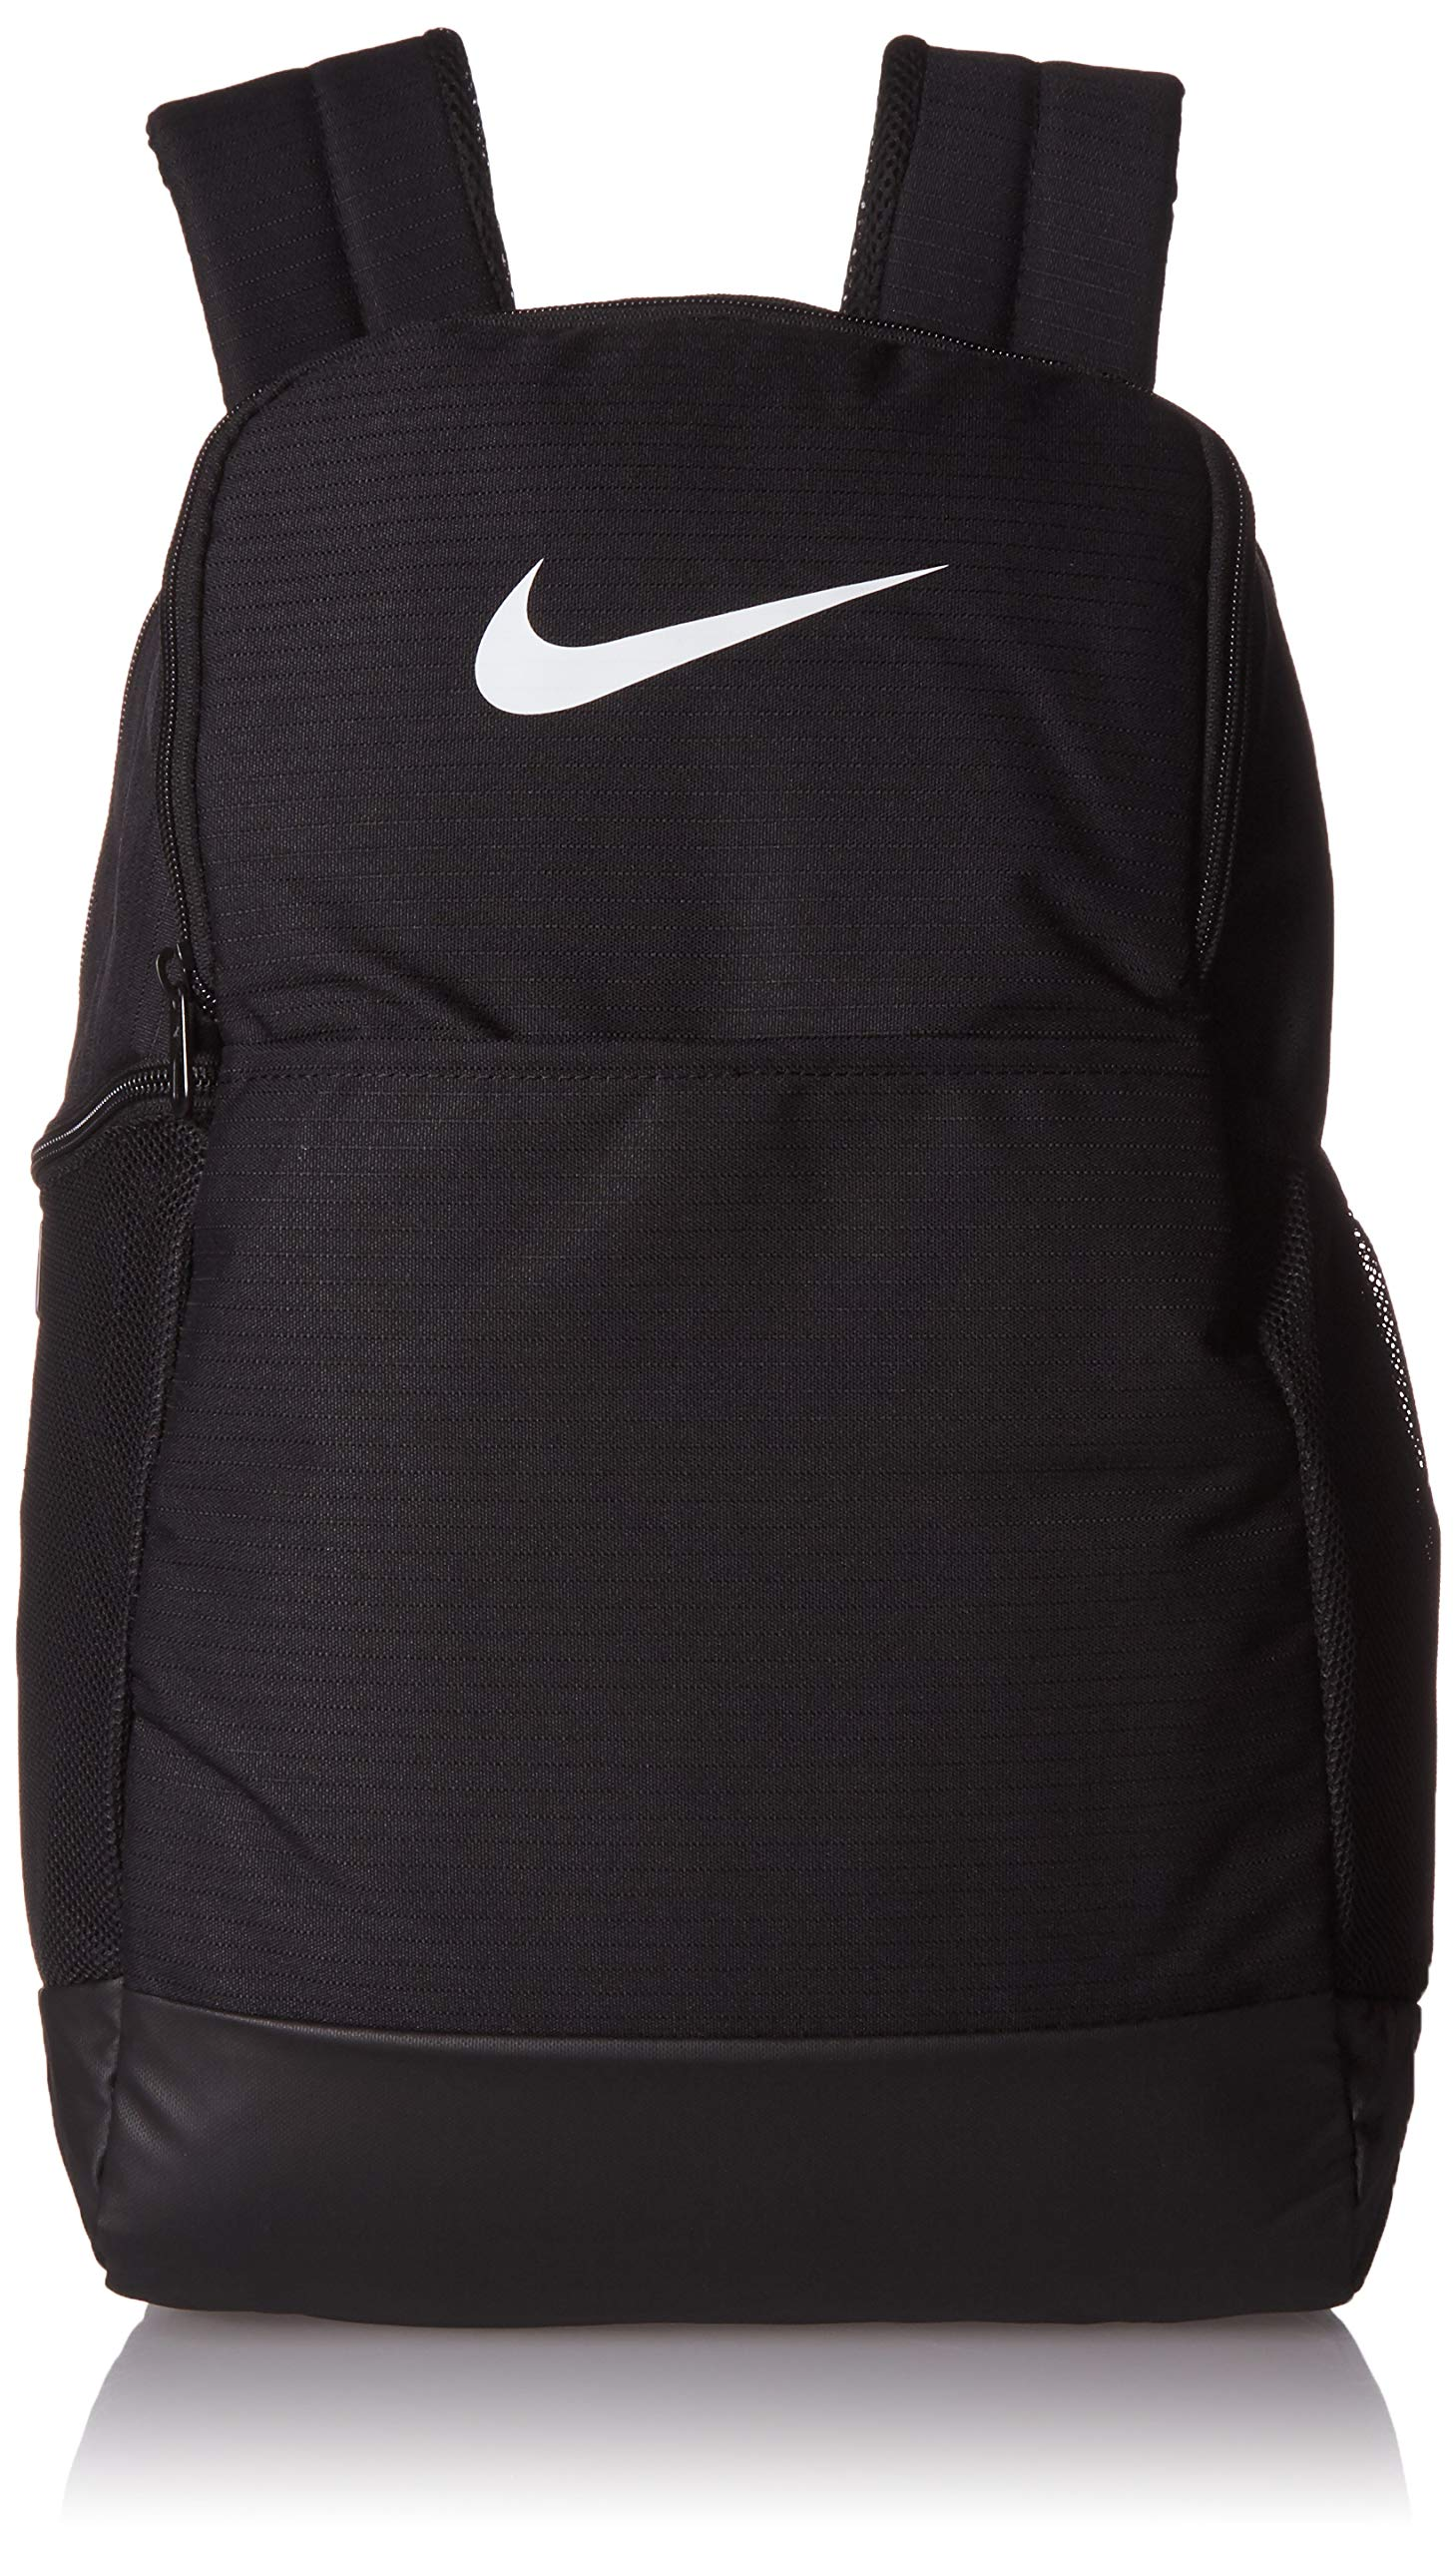 Nike Brasilia Medium Backpack Black